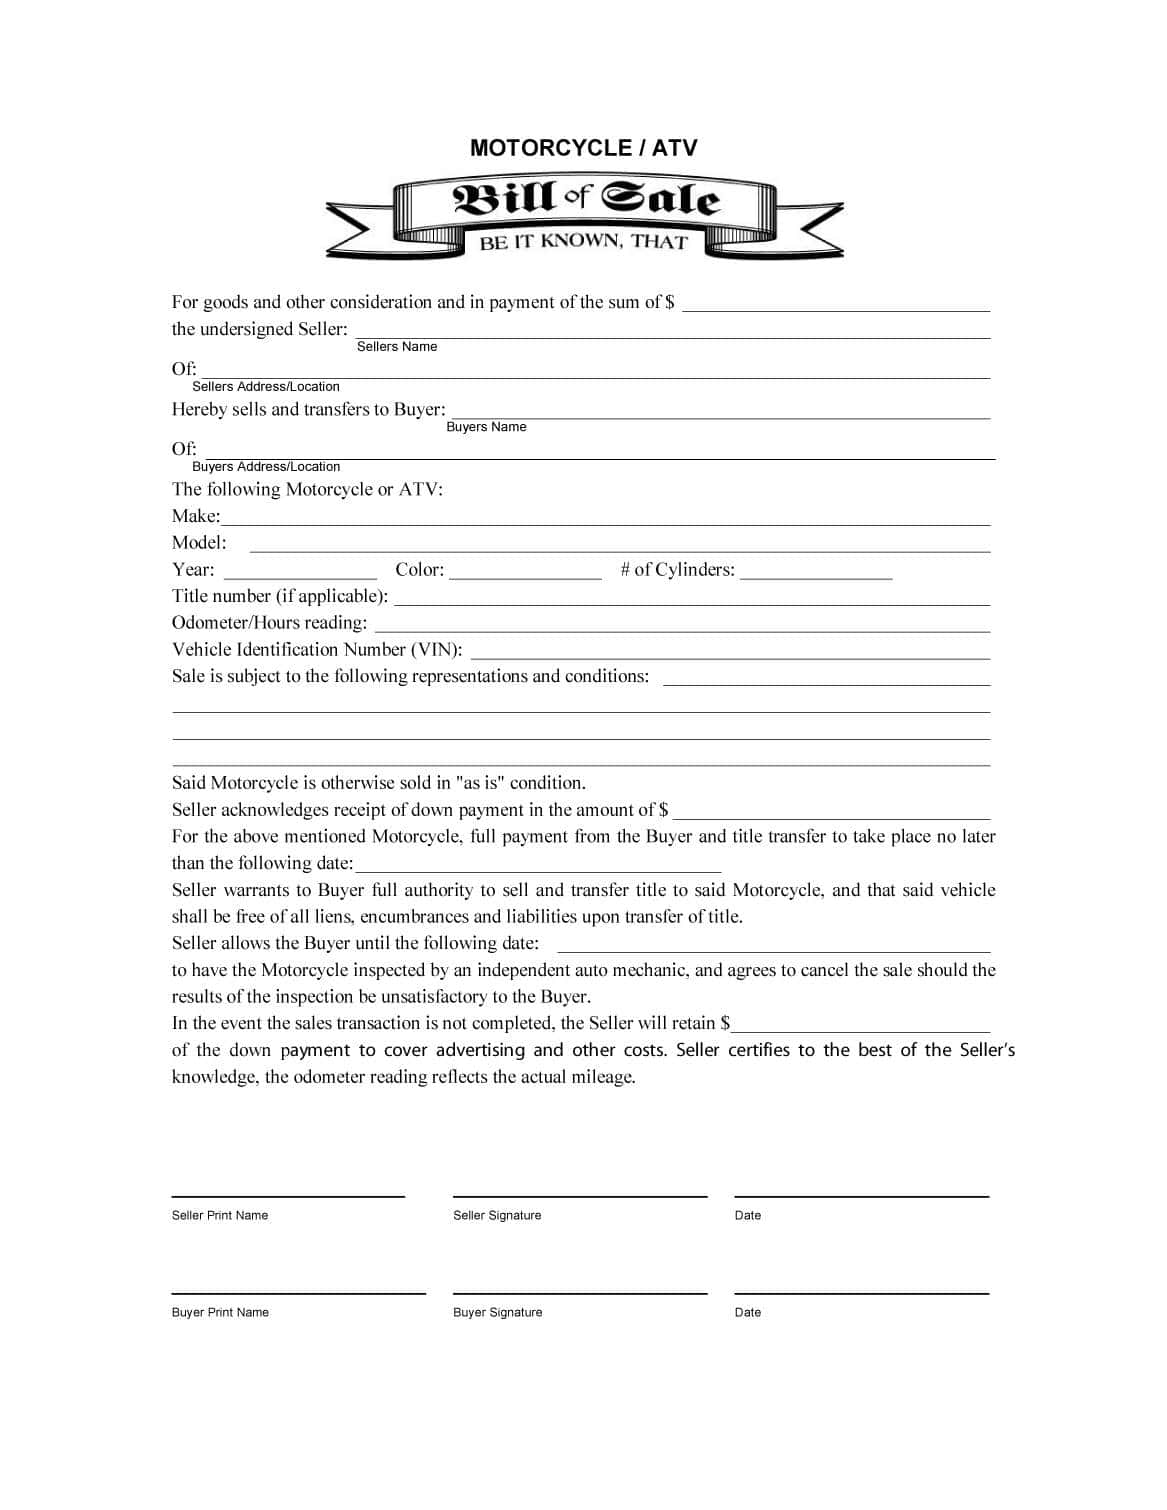 Bill Of Sale Purchase Agreement Template And Car Bill Of Sale Template Doc